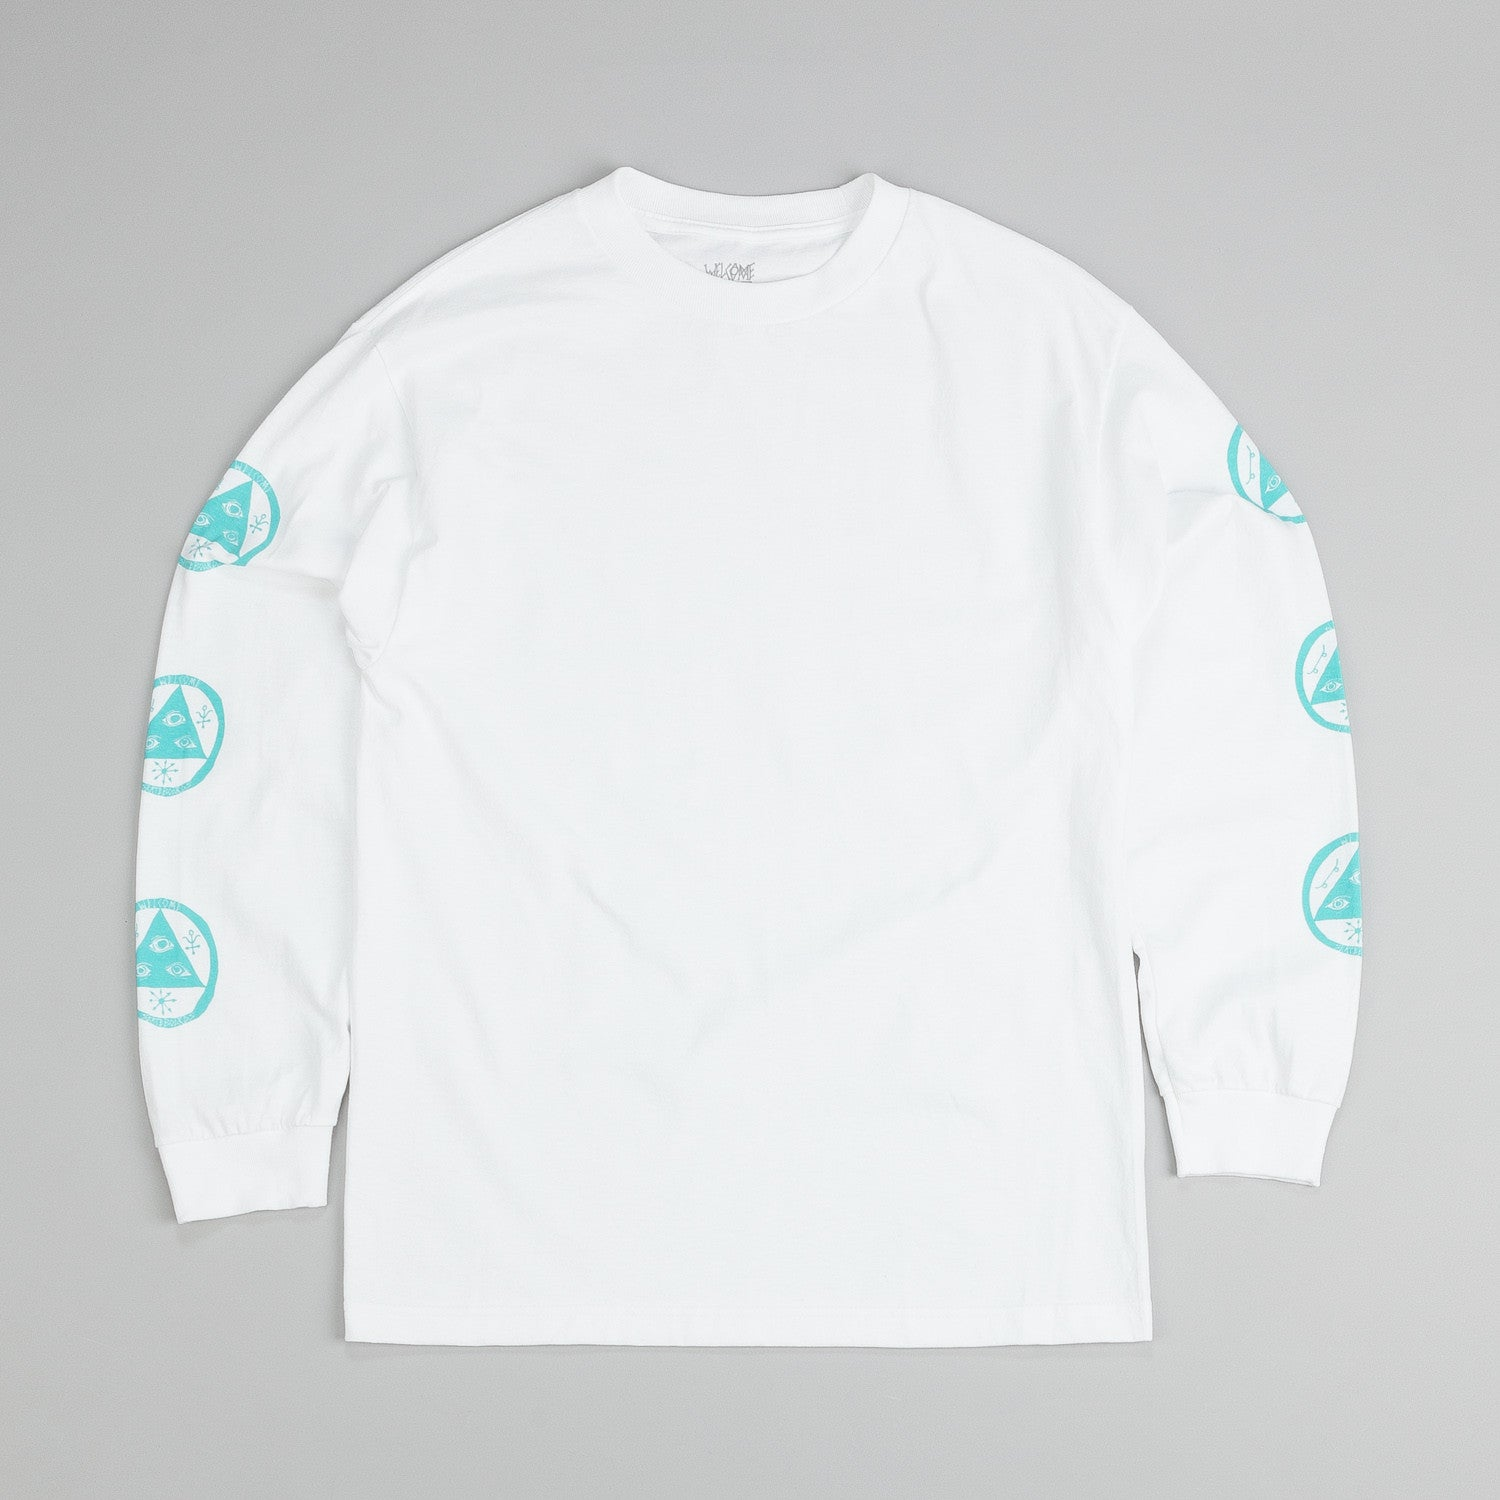 Welcome Talisman L/S T Shirt White / Mint